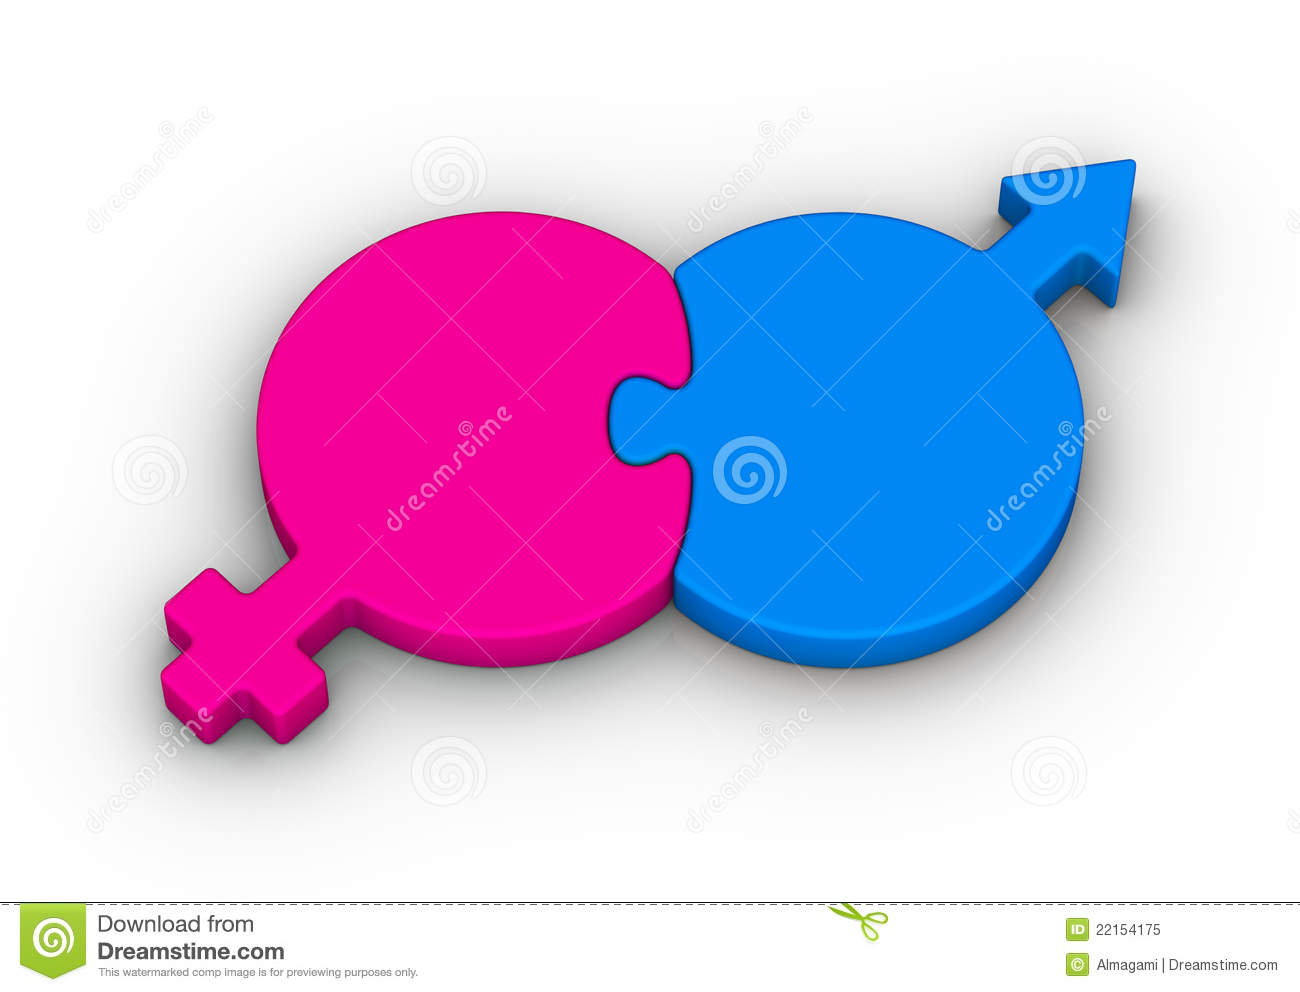 Heterosexual Couple Symbol Royalty Free Stock Photo - Image: 22154175